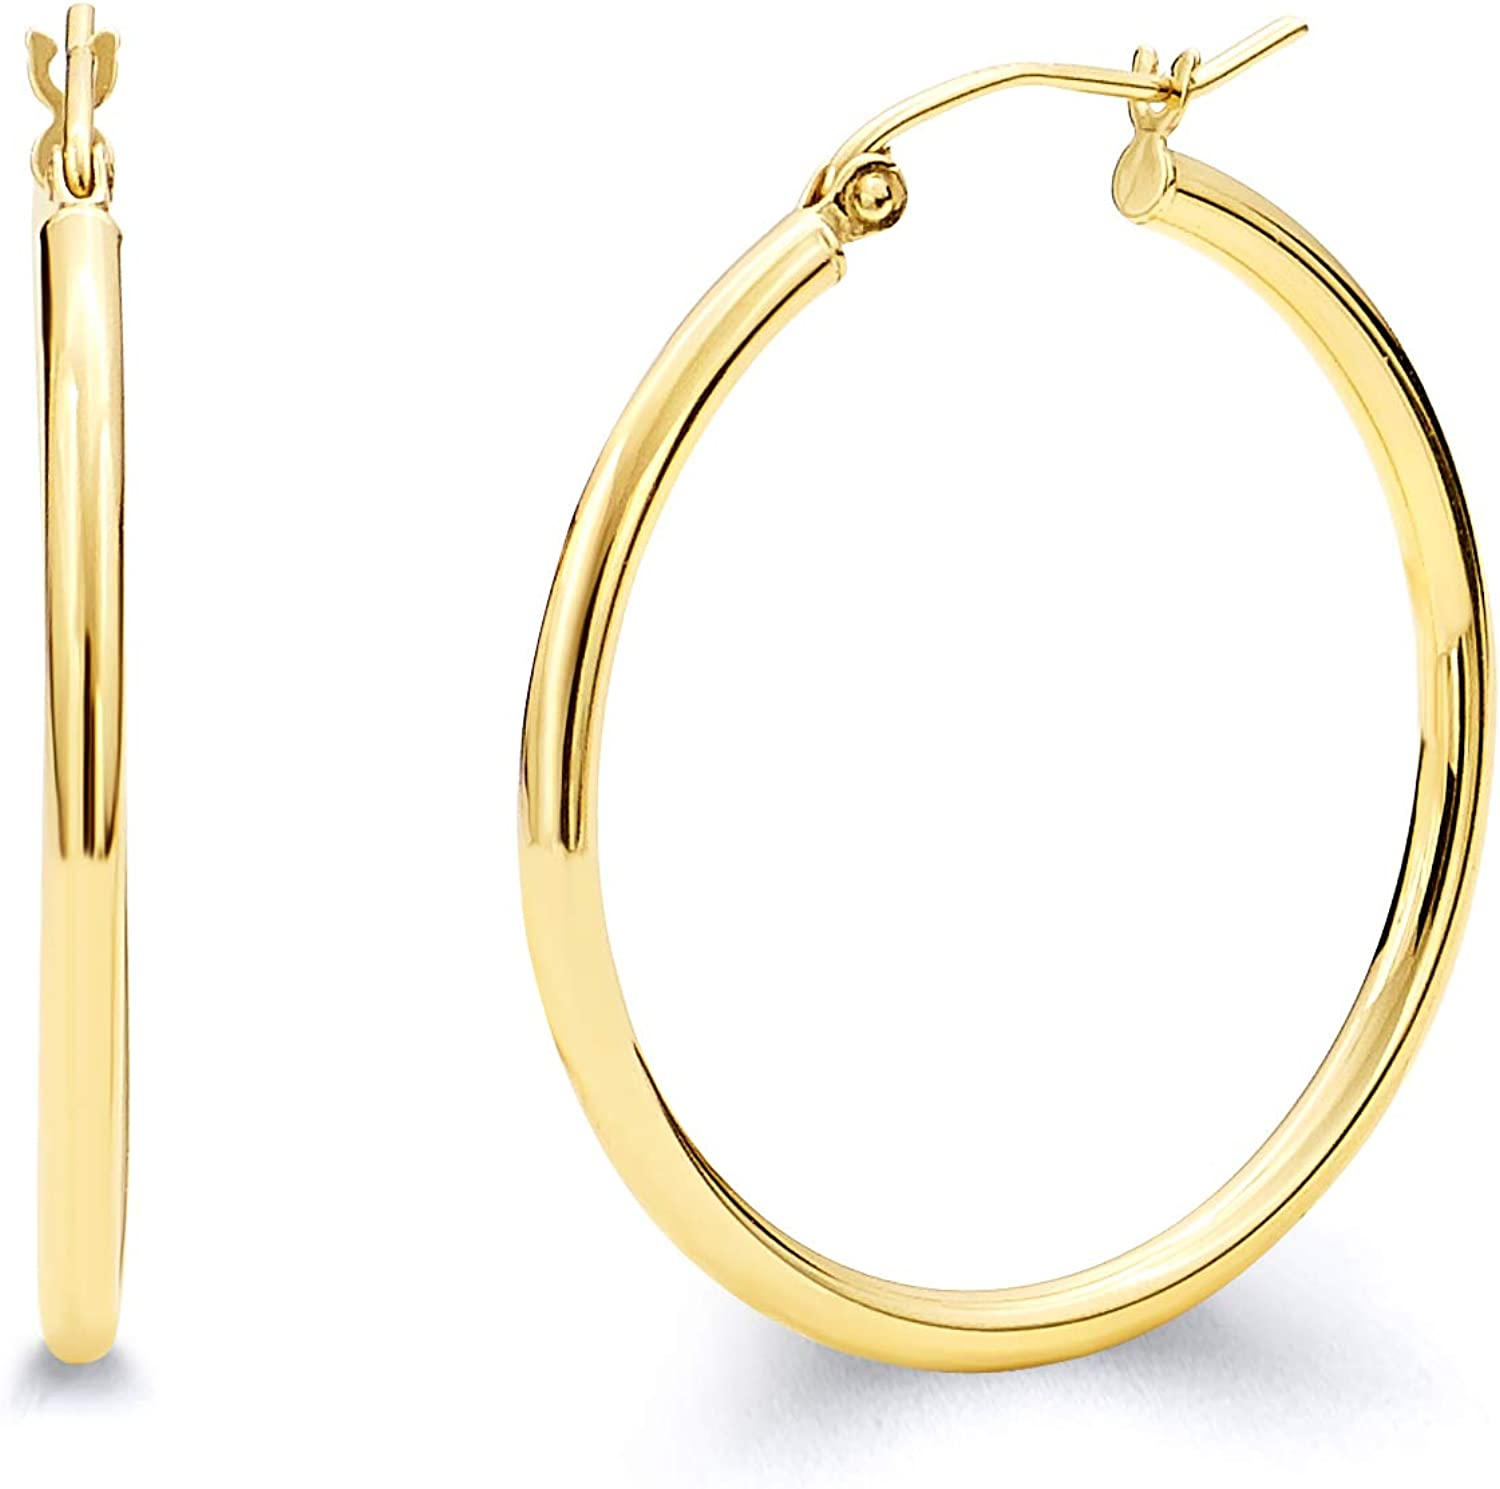 14k REAL Yellow Gold 2mm Thickness Hinged Hoop Earrings - 10 Different Size Available